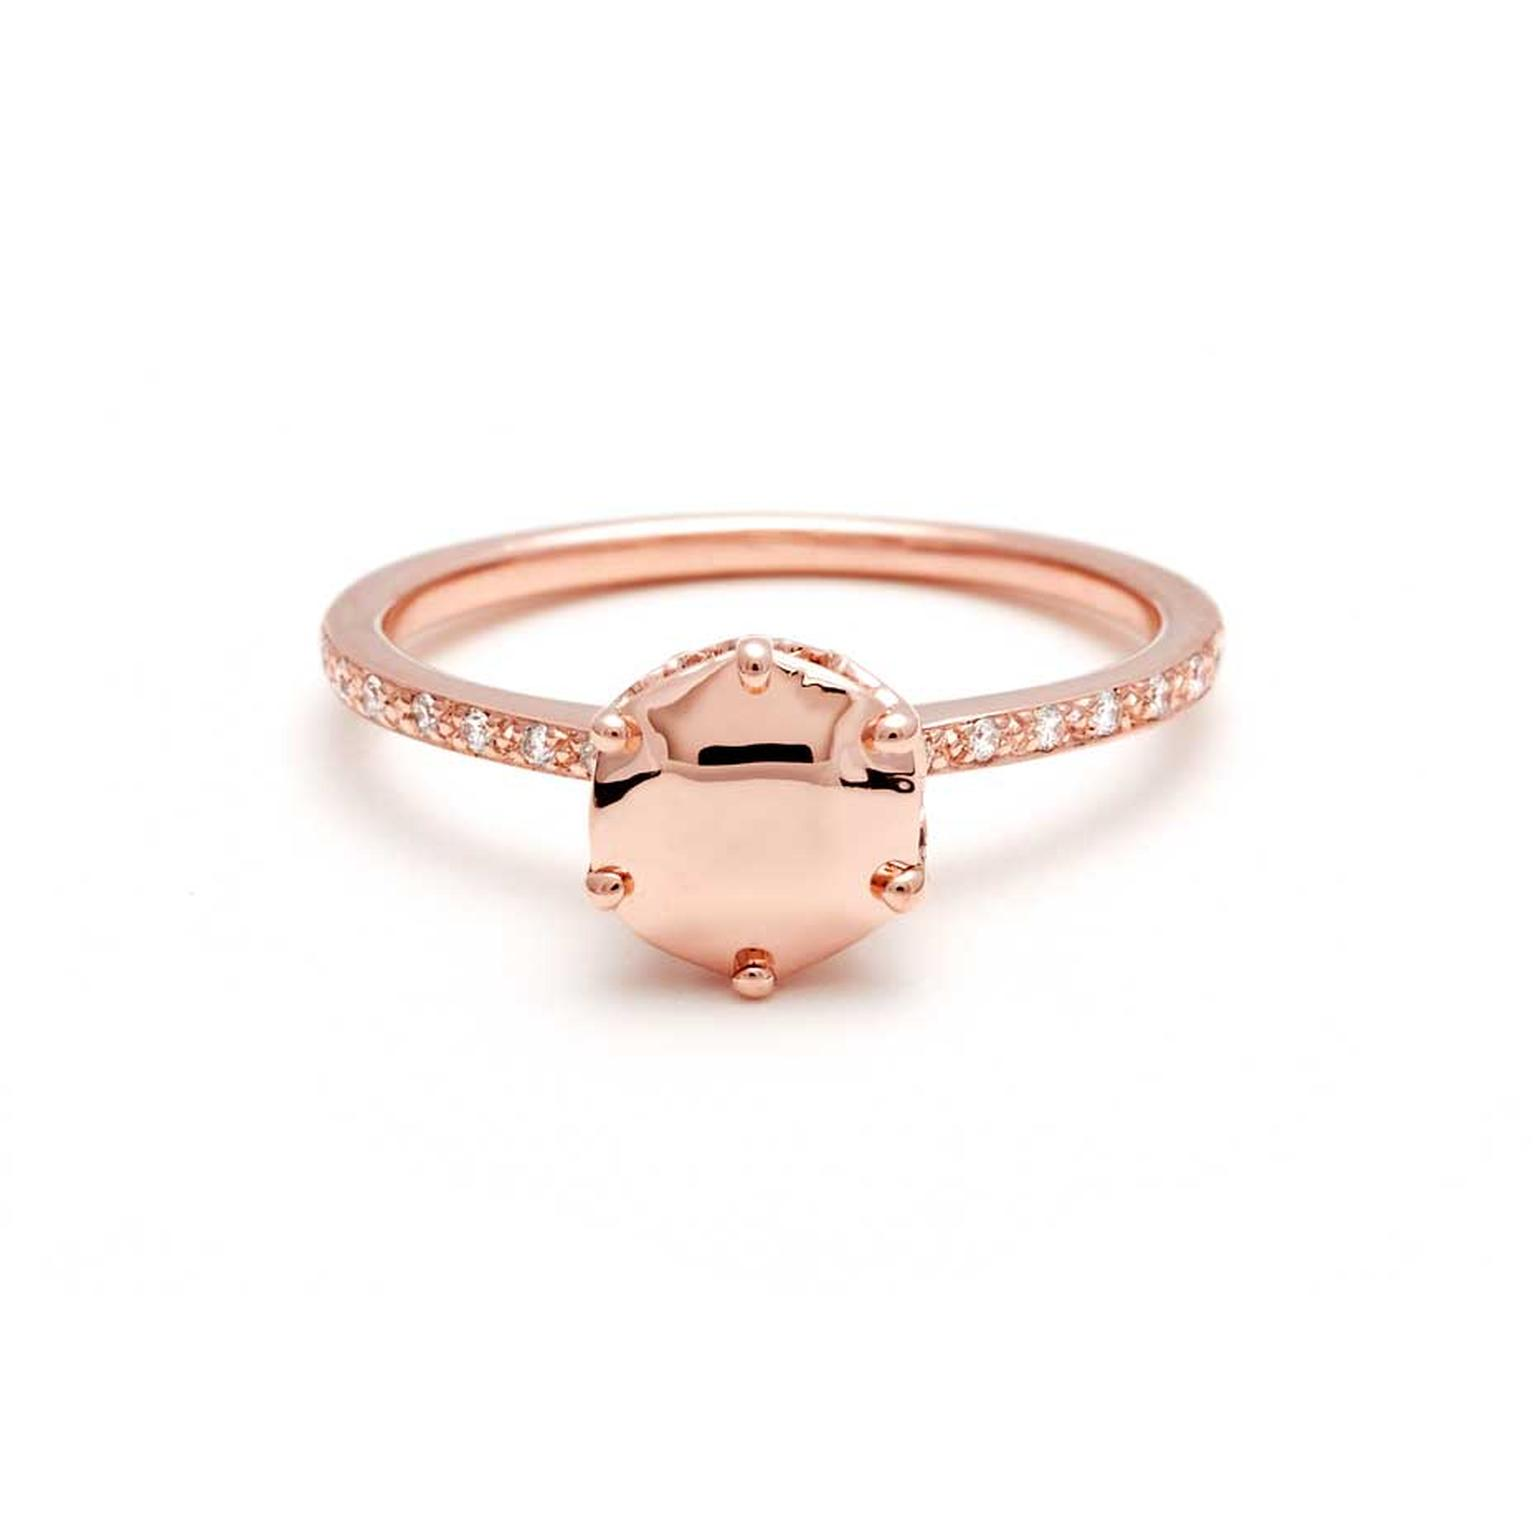 Anna Sheffield's Hazeline solitaire ring in rose gold is also available with a gemstone centre.